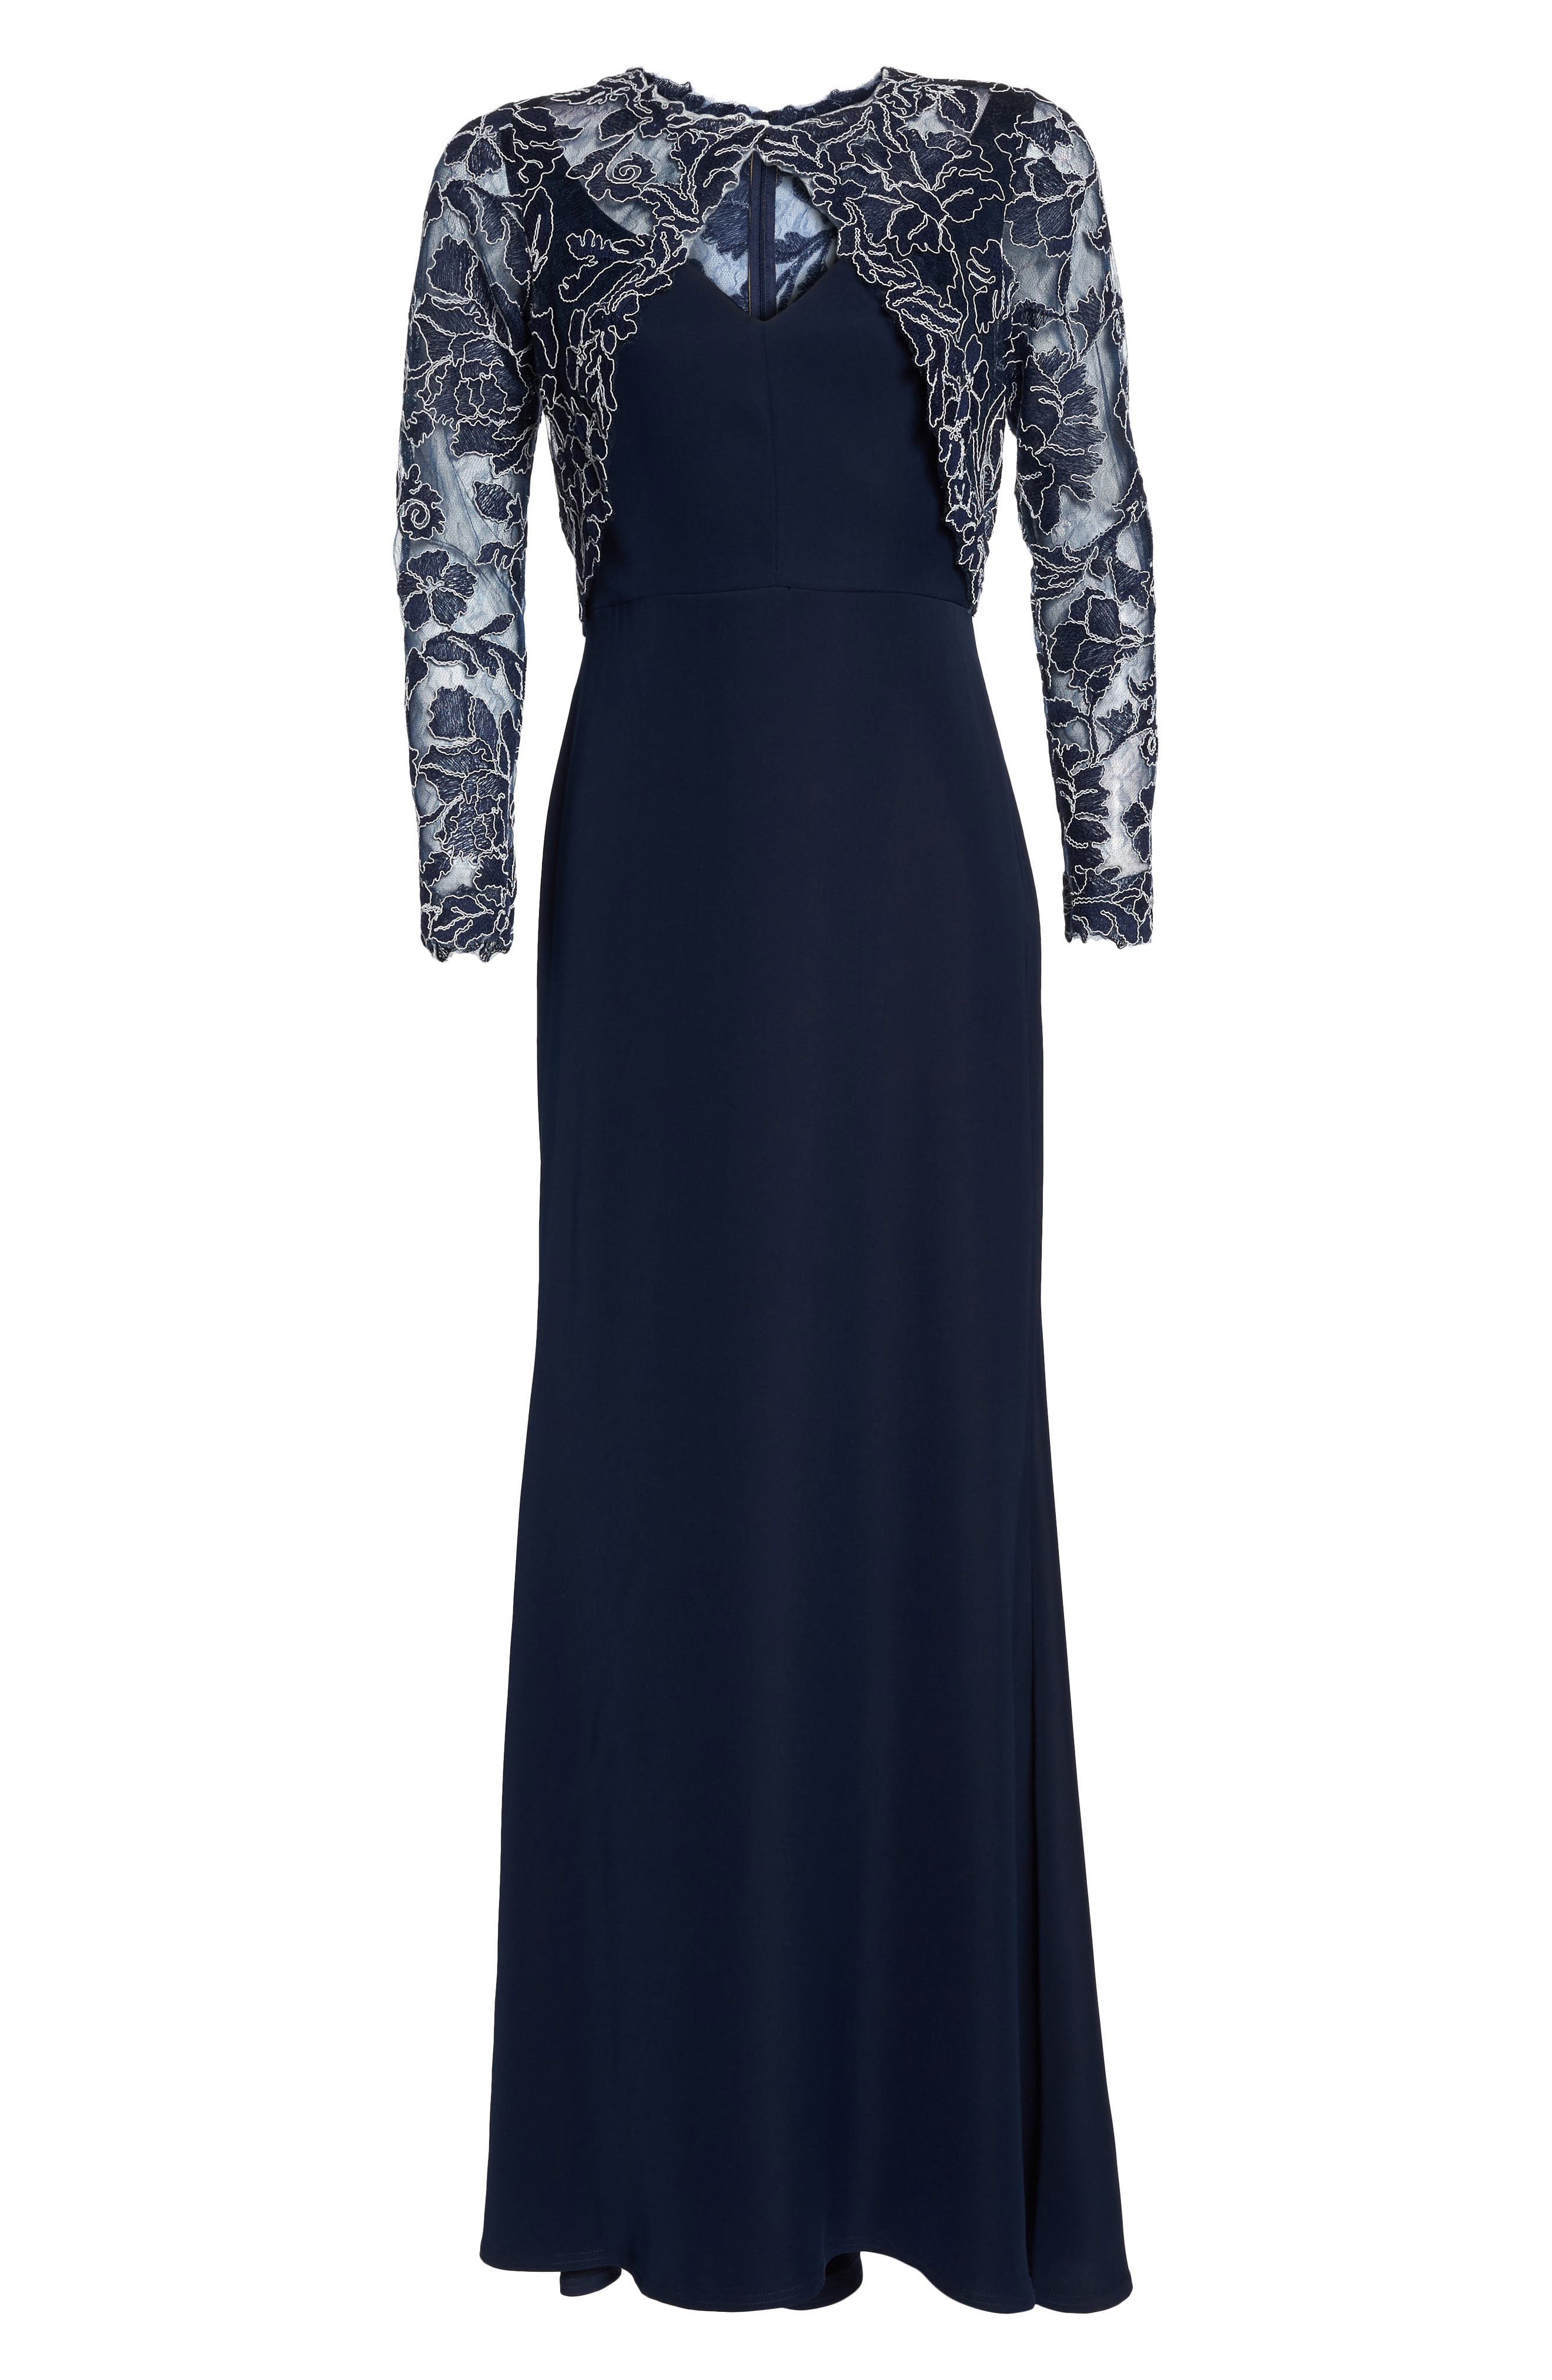 Crepe & Embroidered Lace Gown,                             Alternate thumbnail 7, color,                             NAVY/ IVORY